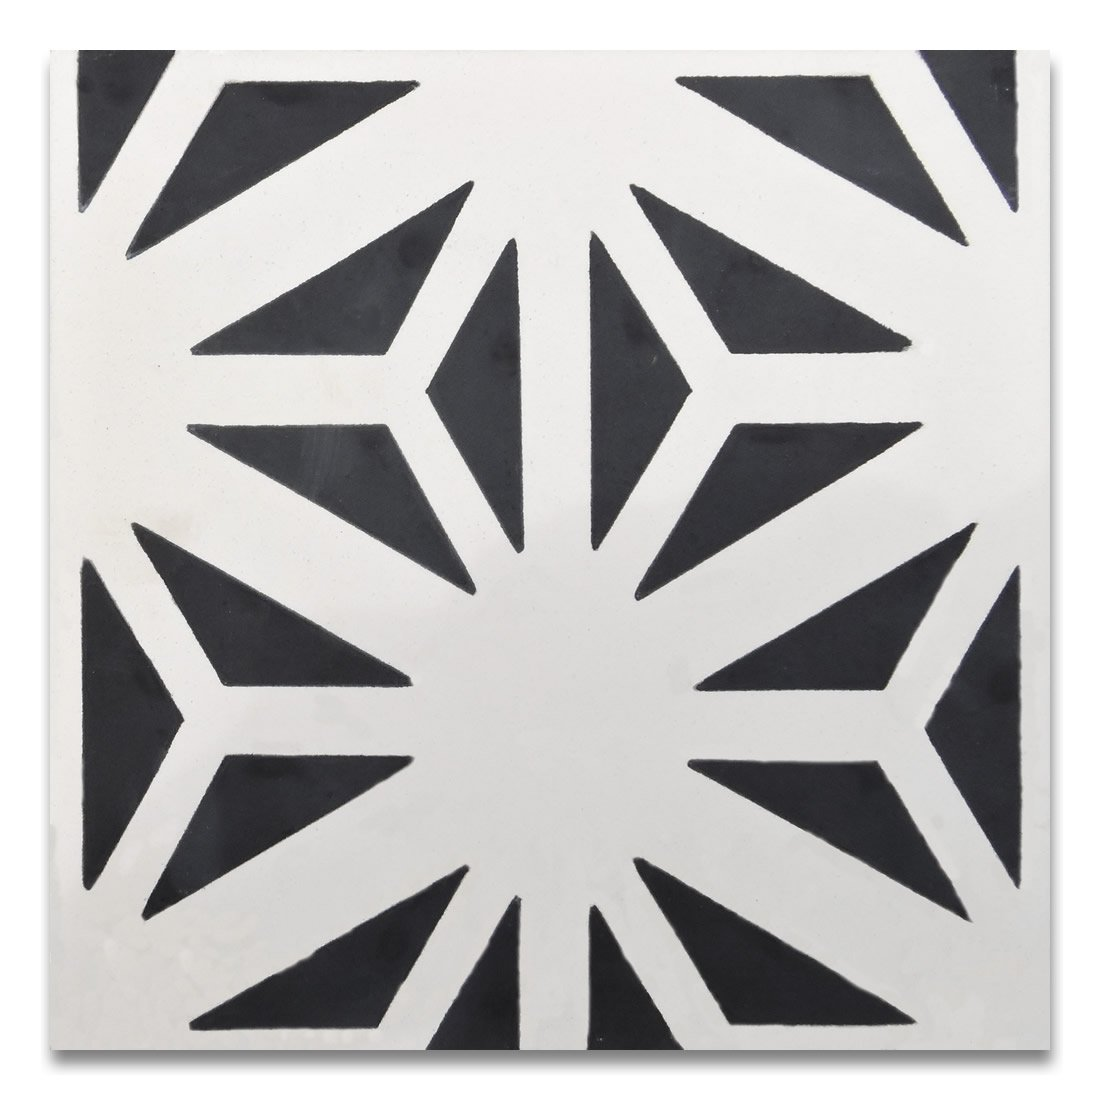 Moroccan Mosaic & Tile House CTP67-01 Azemour 8''x8'' Handmade Cement Tile (Pack of 12), BlackWhite by Moroccan Mosaic & Tile House